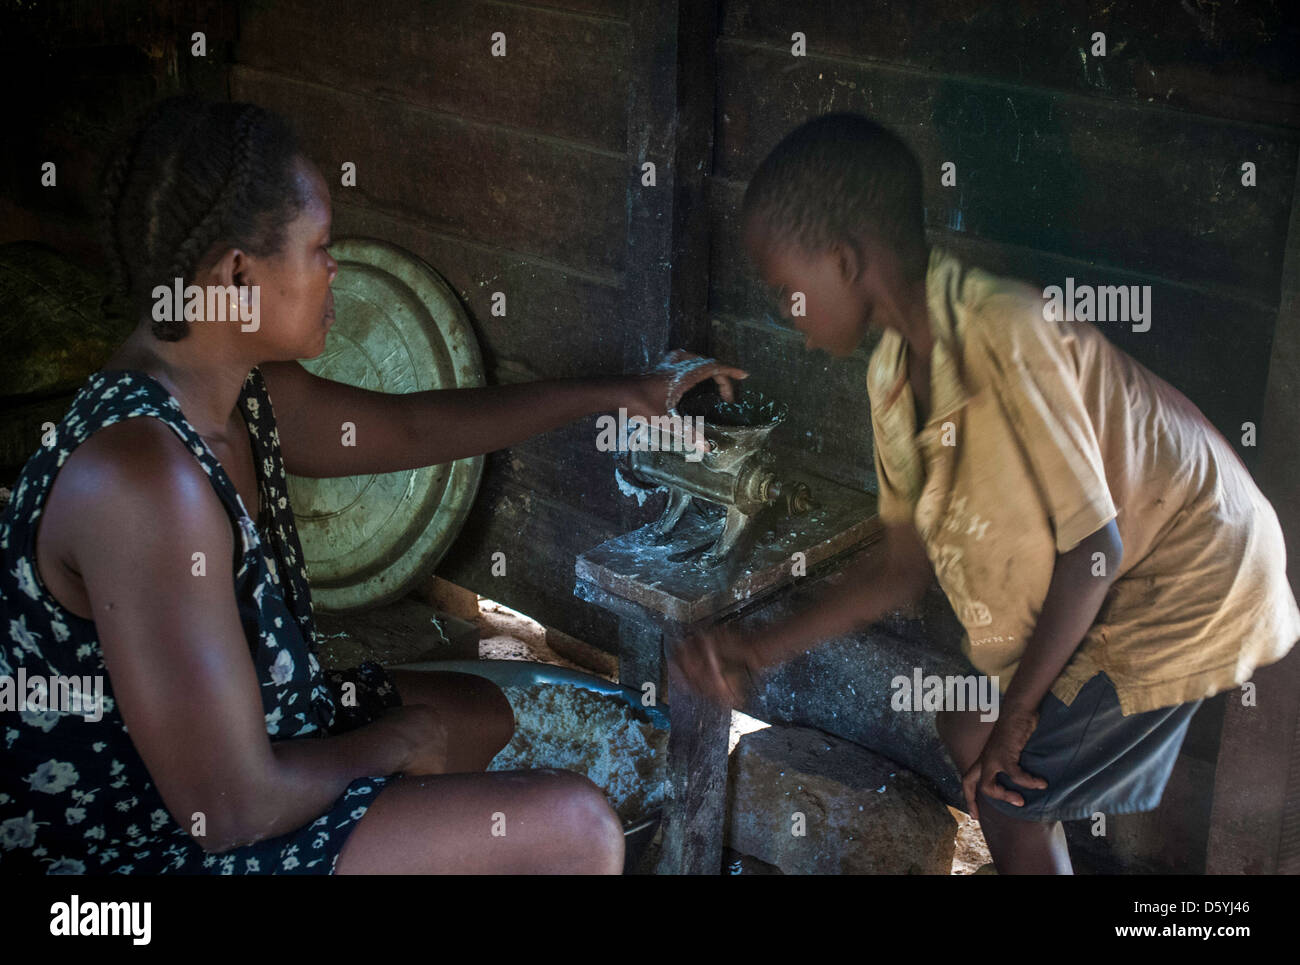 making cassava sticks in Cameroon - Stock Image